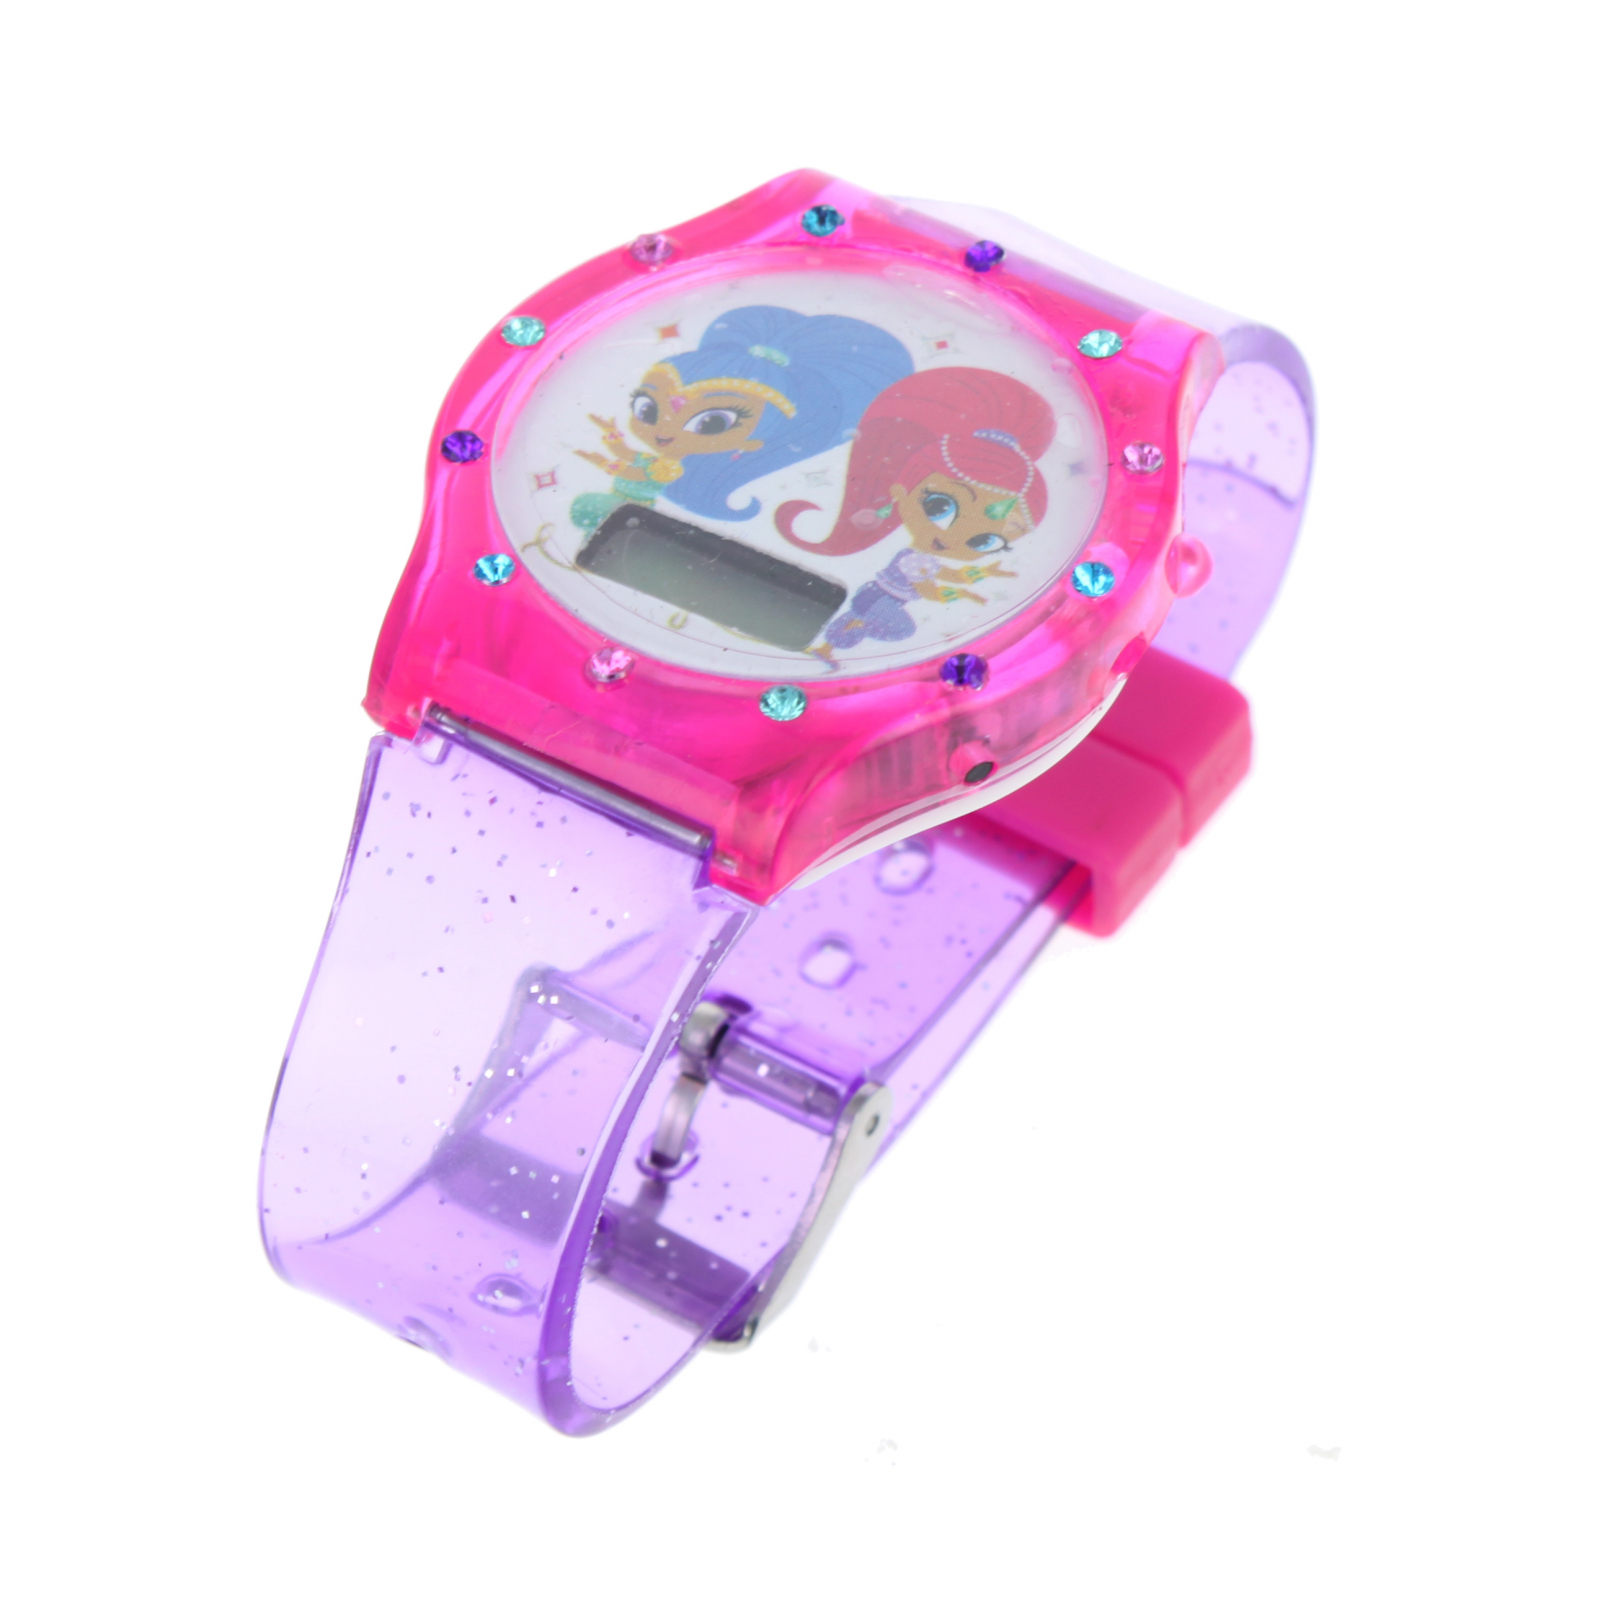 Nickelodeon Nick Jr Shimmer and Shine Light Up Watch